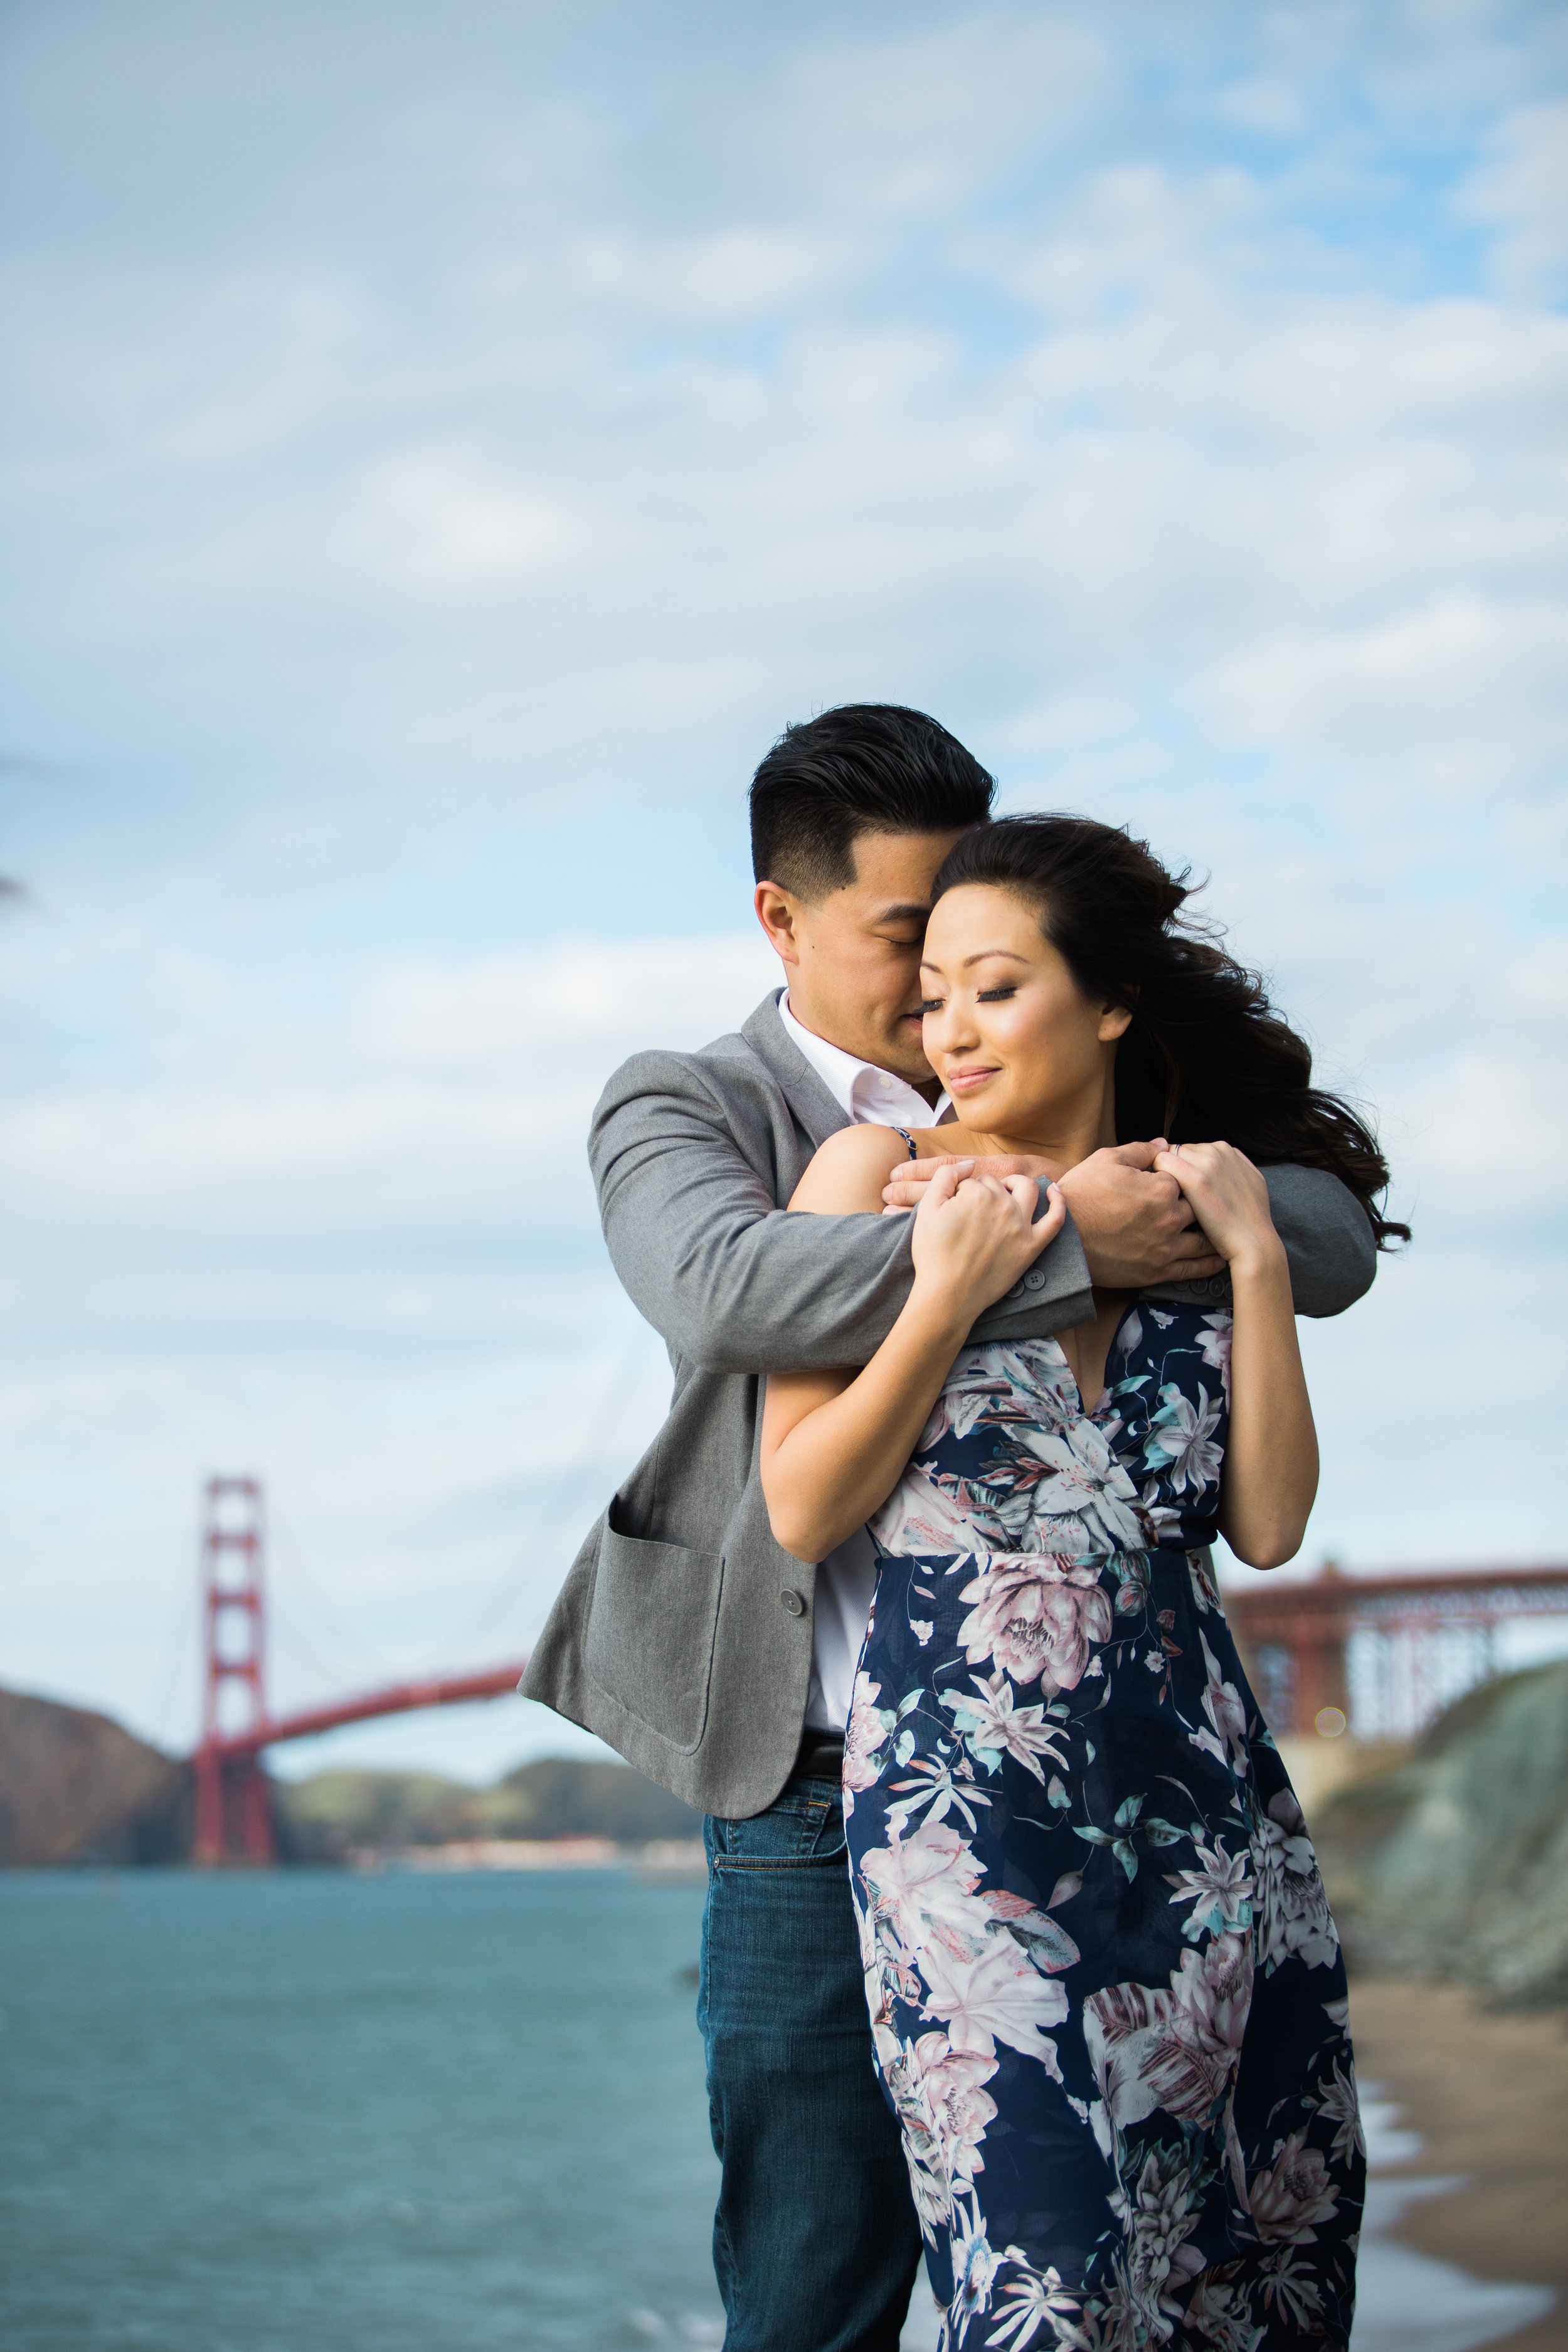 San-Francisco-Engagement-Session-Tara-Nichole-Photo-23.jpg